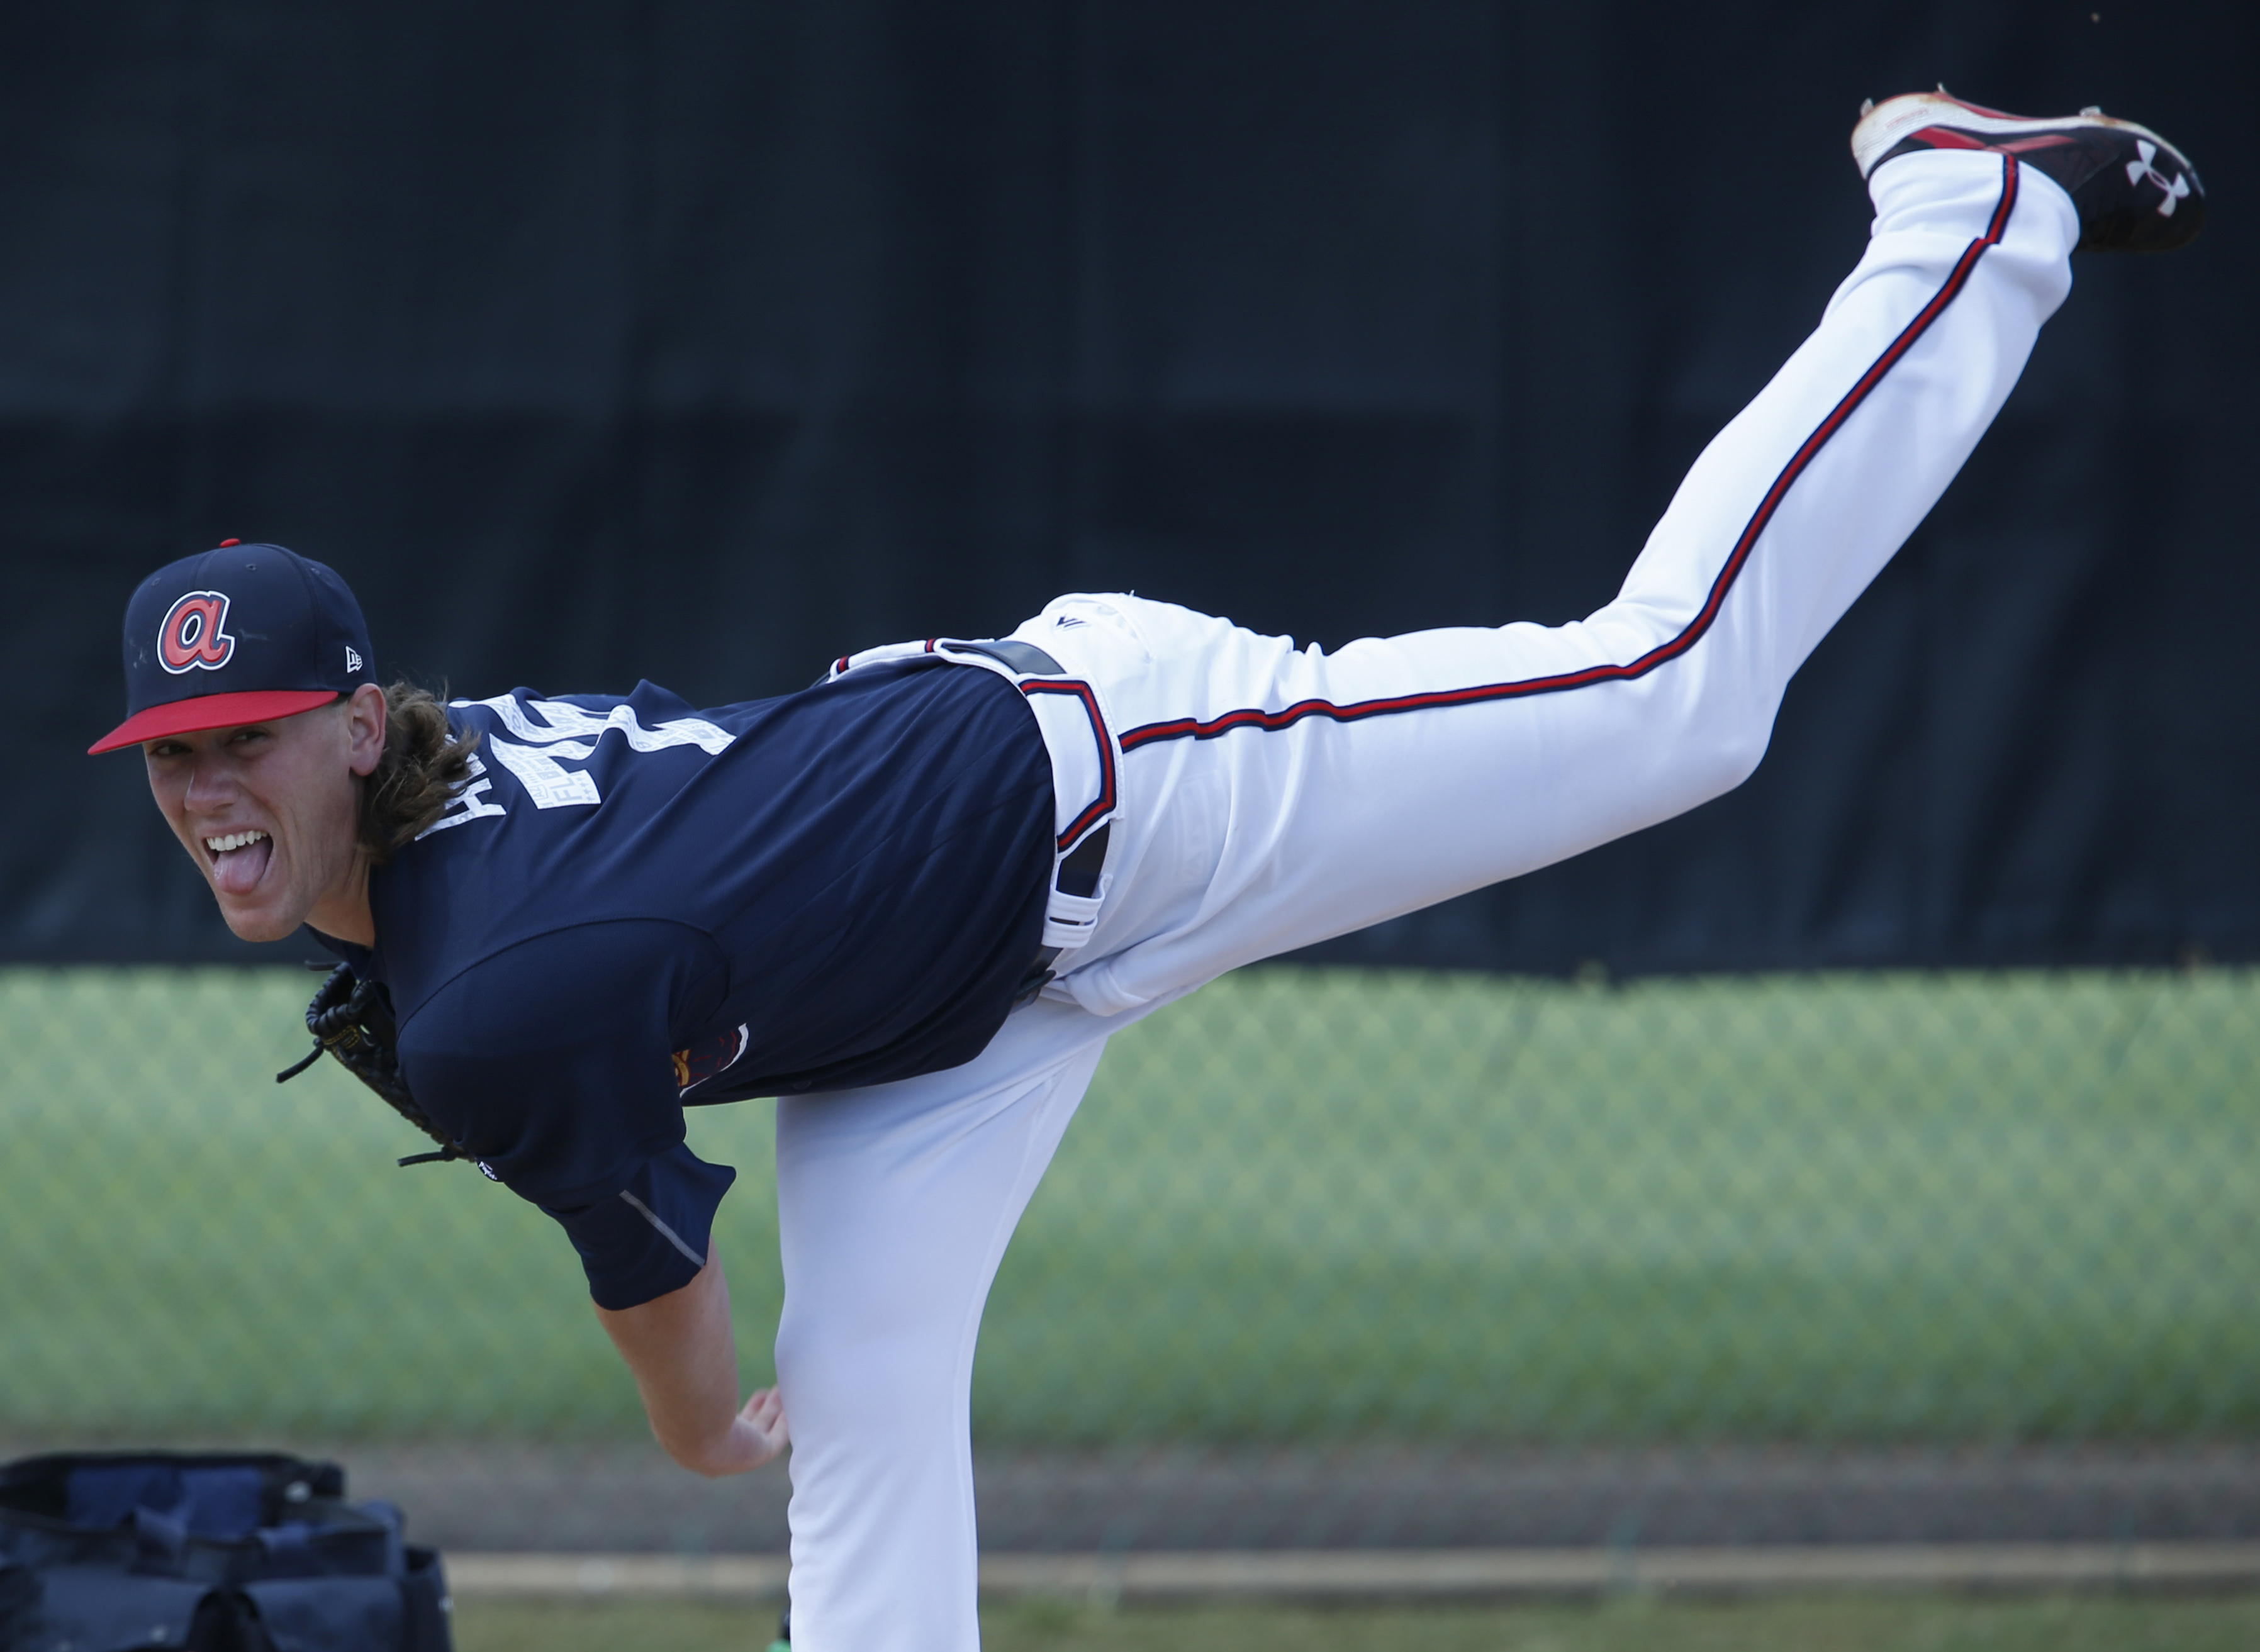 2019 Top 50 Braves Prospects - #11-#20